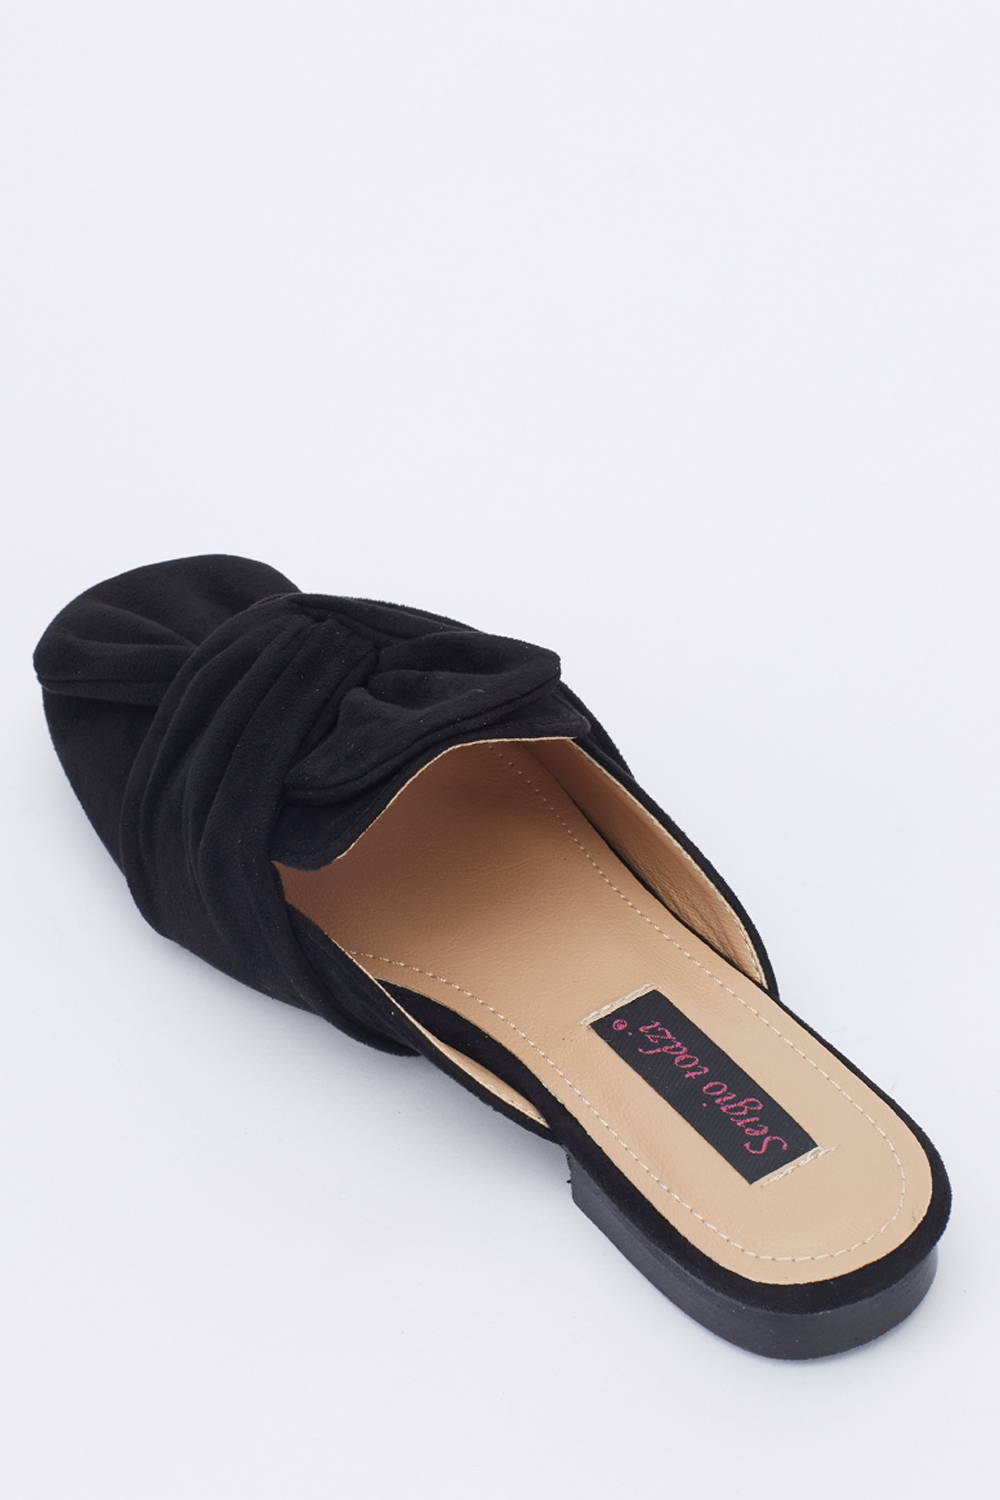 Knot Front Slip On Shoes - Just £6